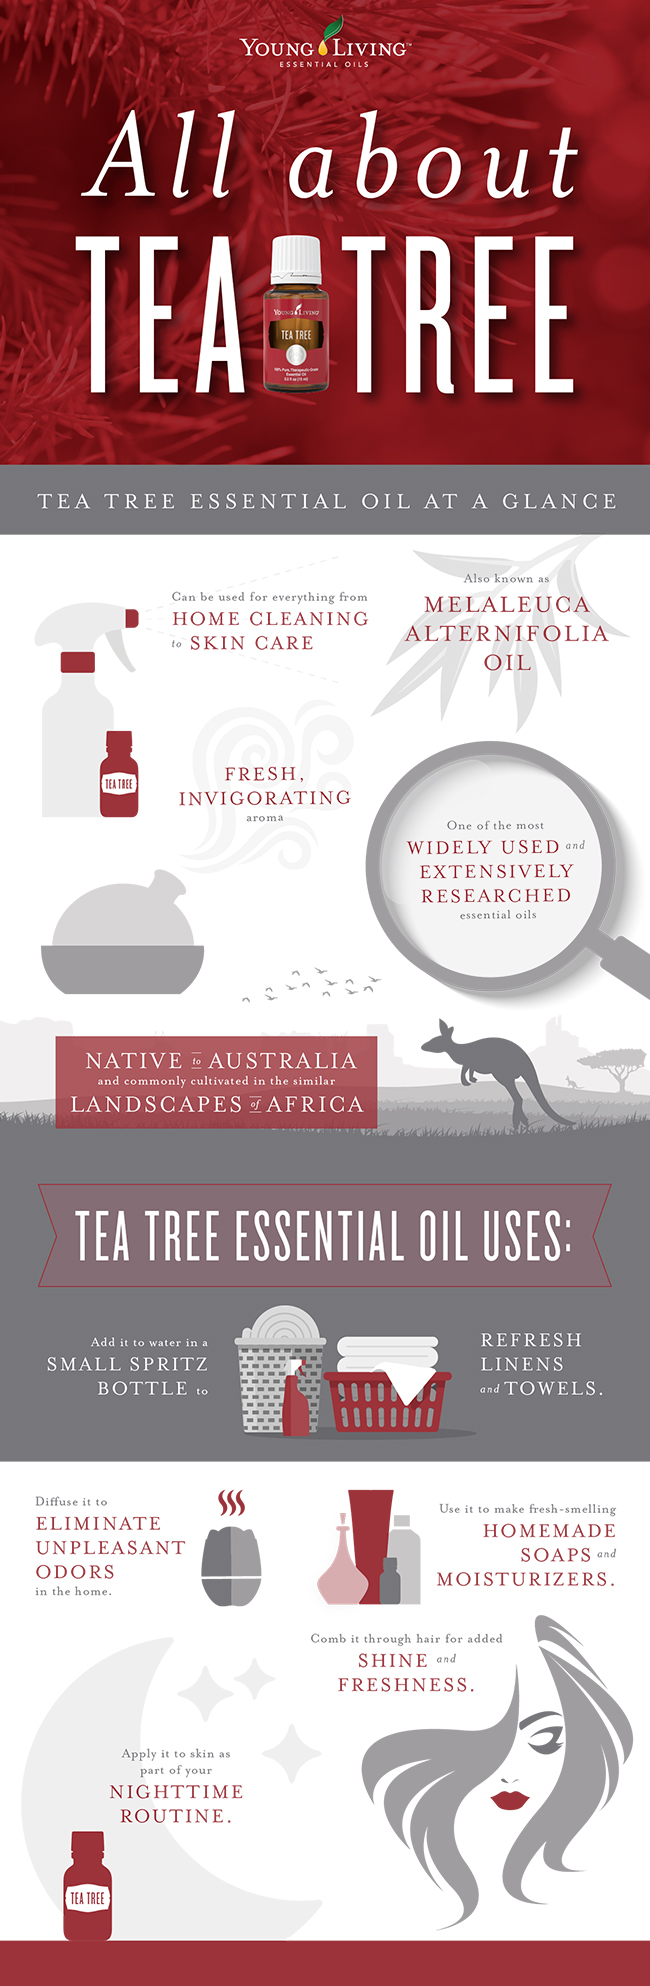 How To Use Tea Tree Essential Oil Benefits And Uses